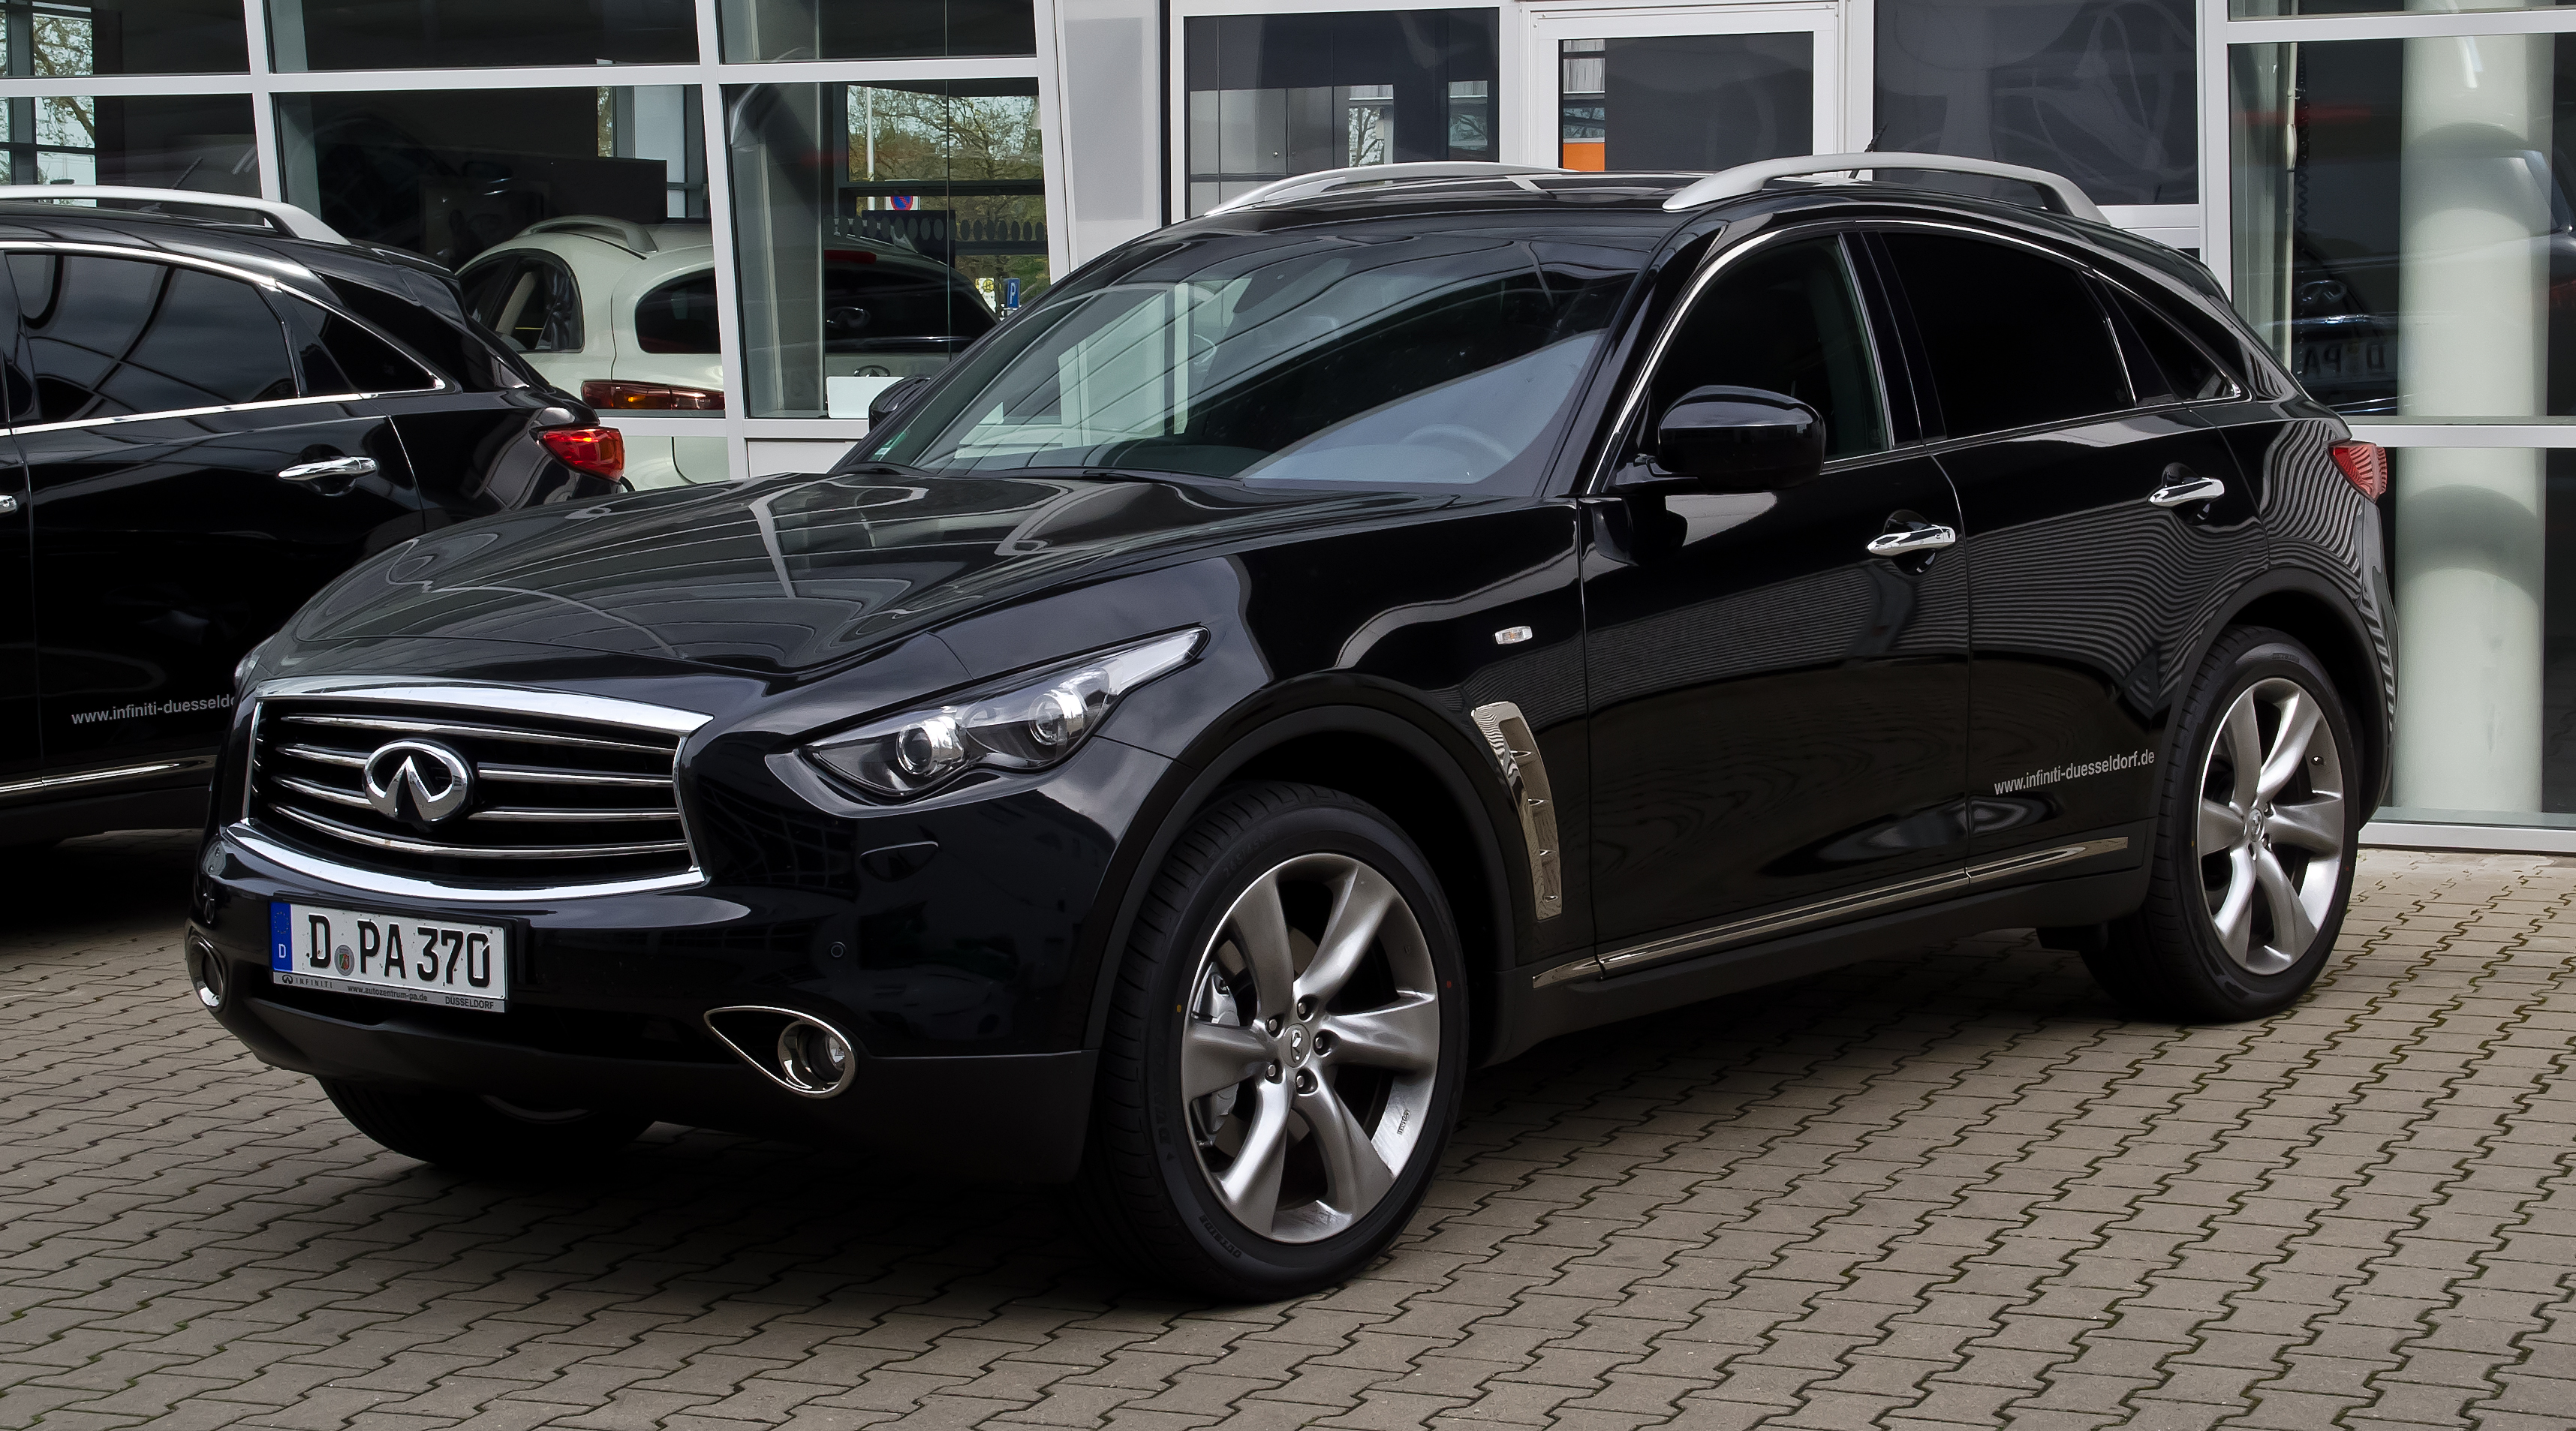 Infiniti Qx70 Wiki >> File:Infiniti FX50 S (S51, Facelift) – Frontansicht, 28 ...